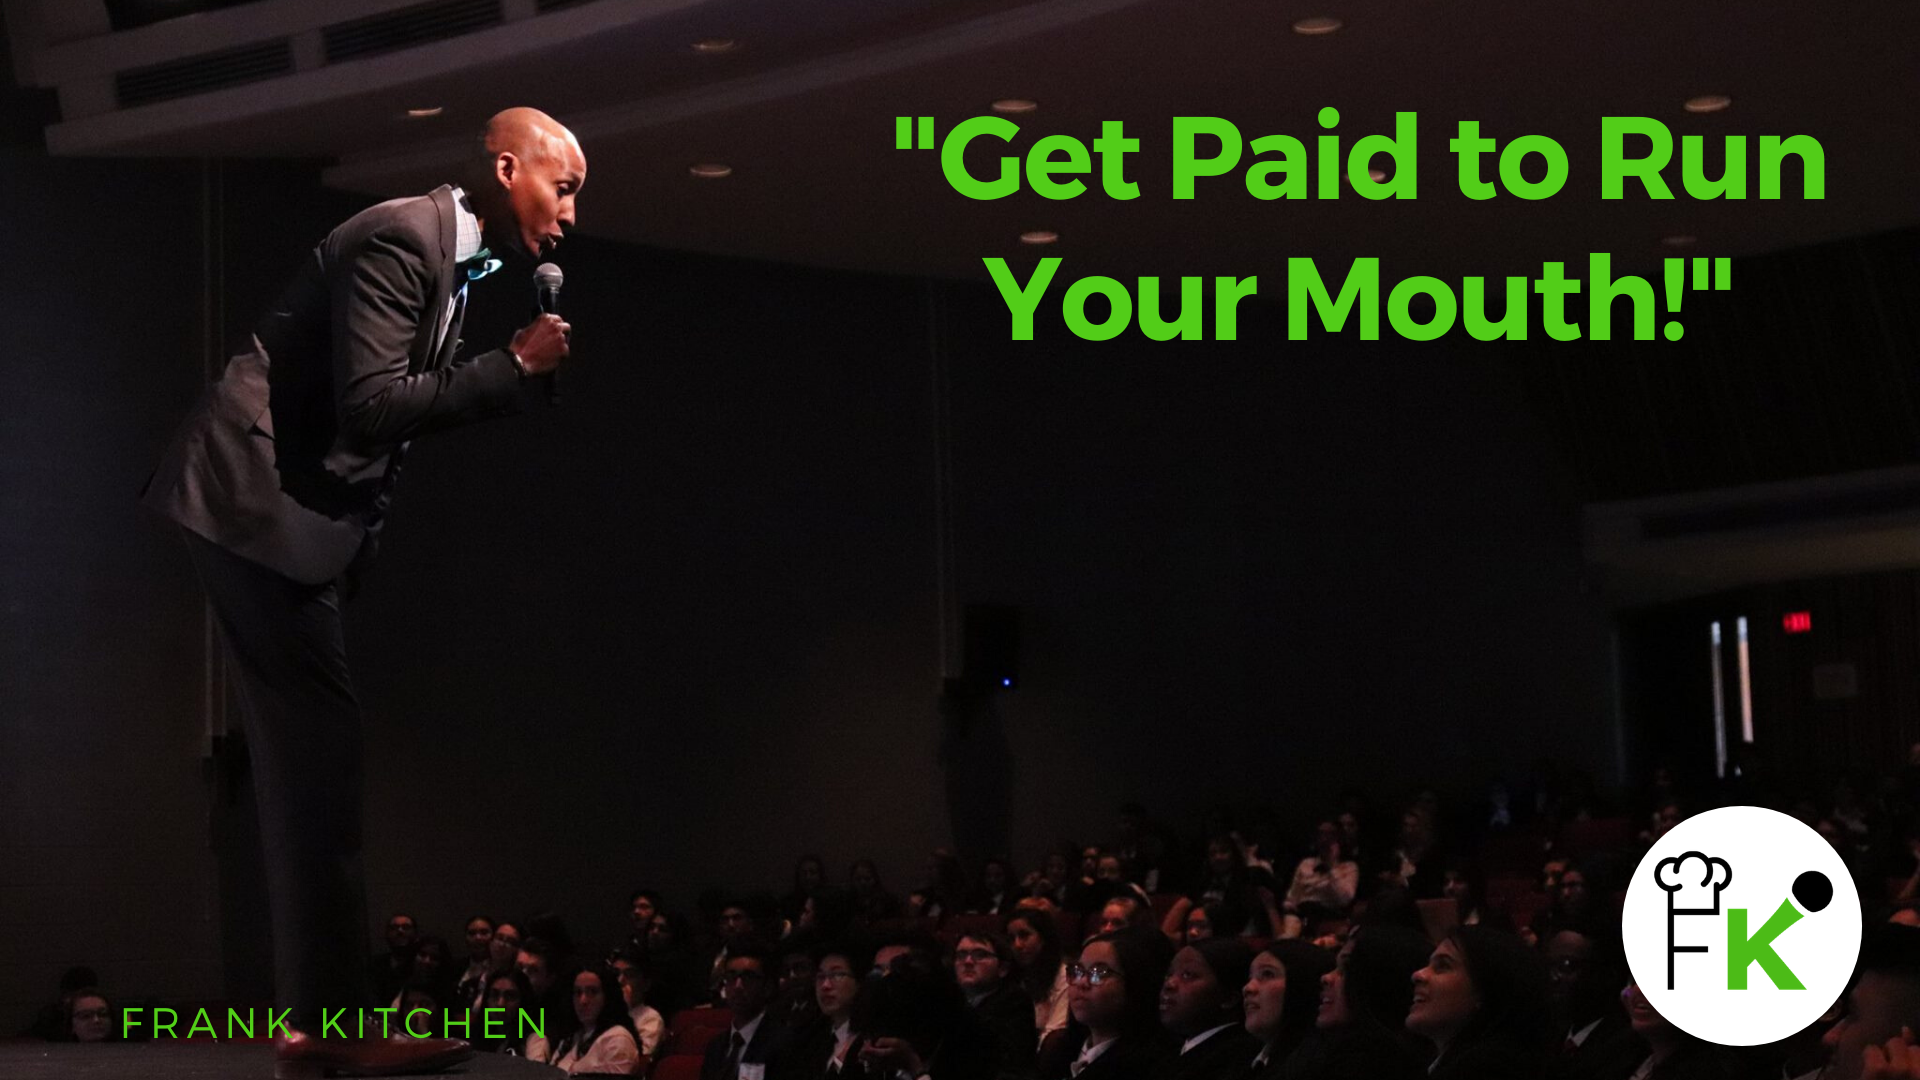 Get Paid to Run Your Mouth by Motivational Speaker Frank Kitchen